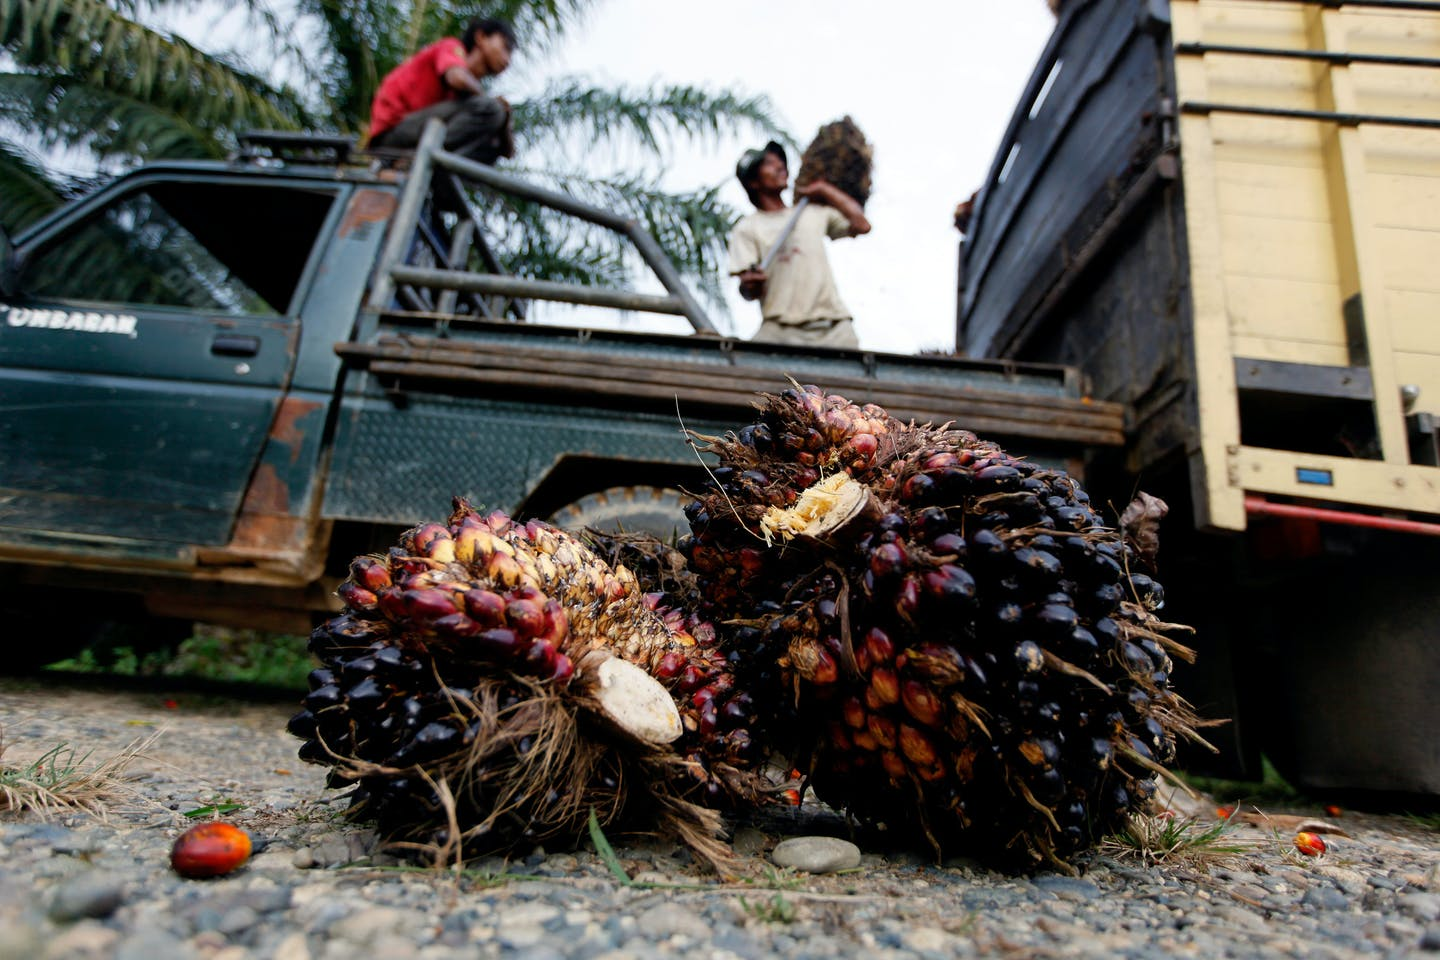 Workers load a truck with palm fruit at a palm oil plantaion in Nagan raya, Aceh province, Indonesia